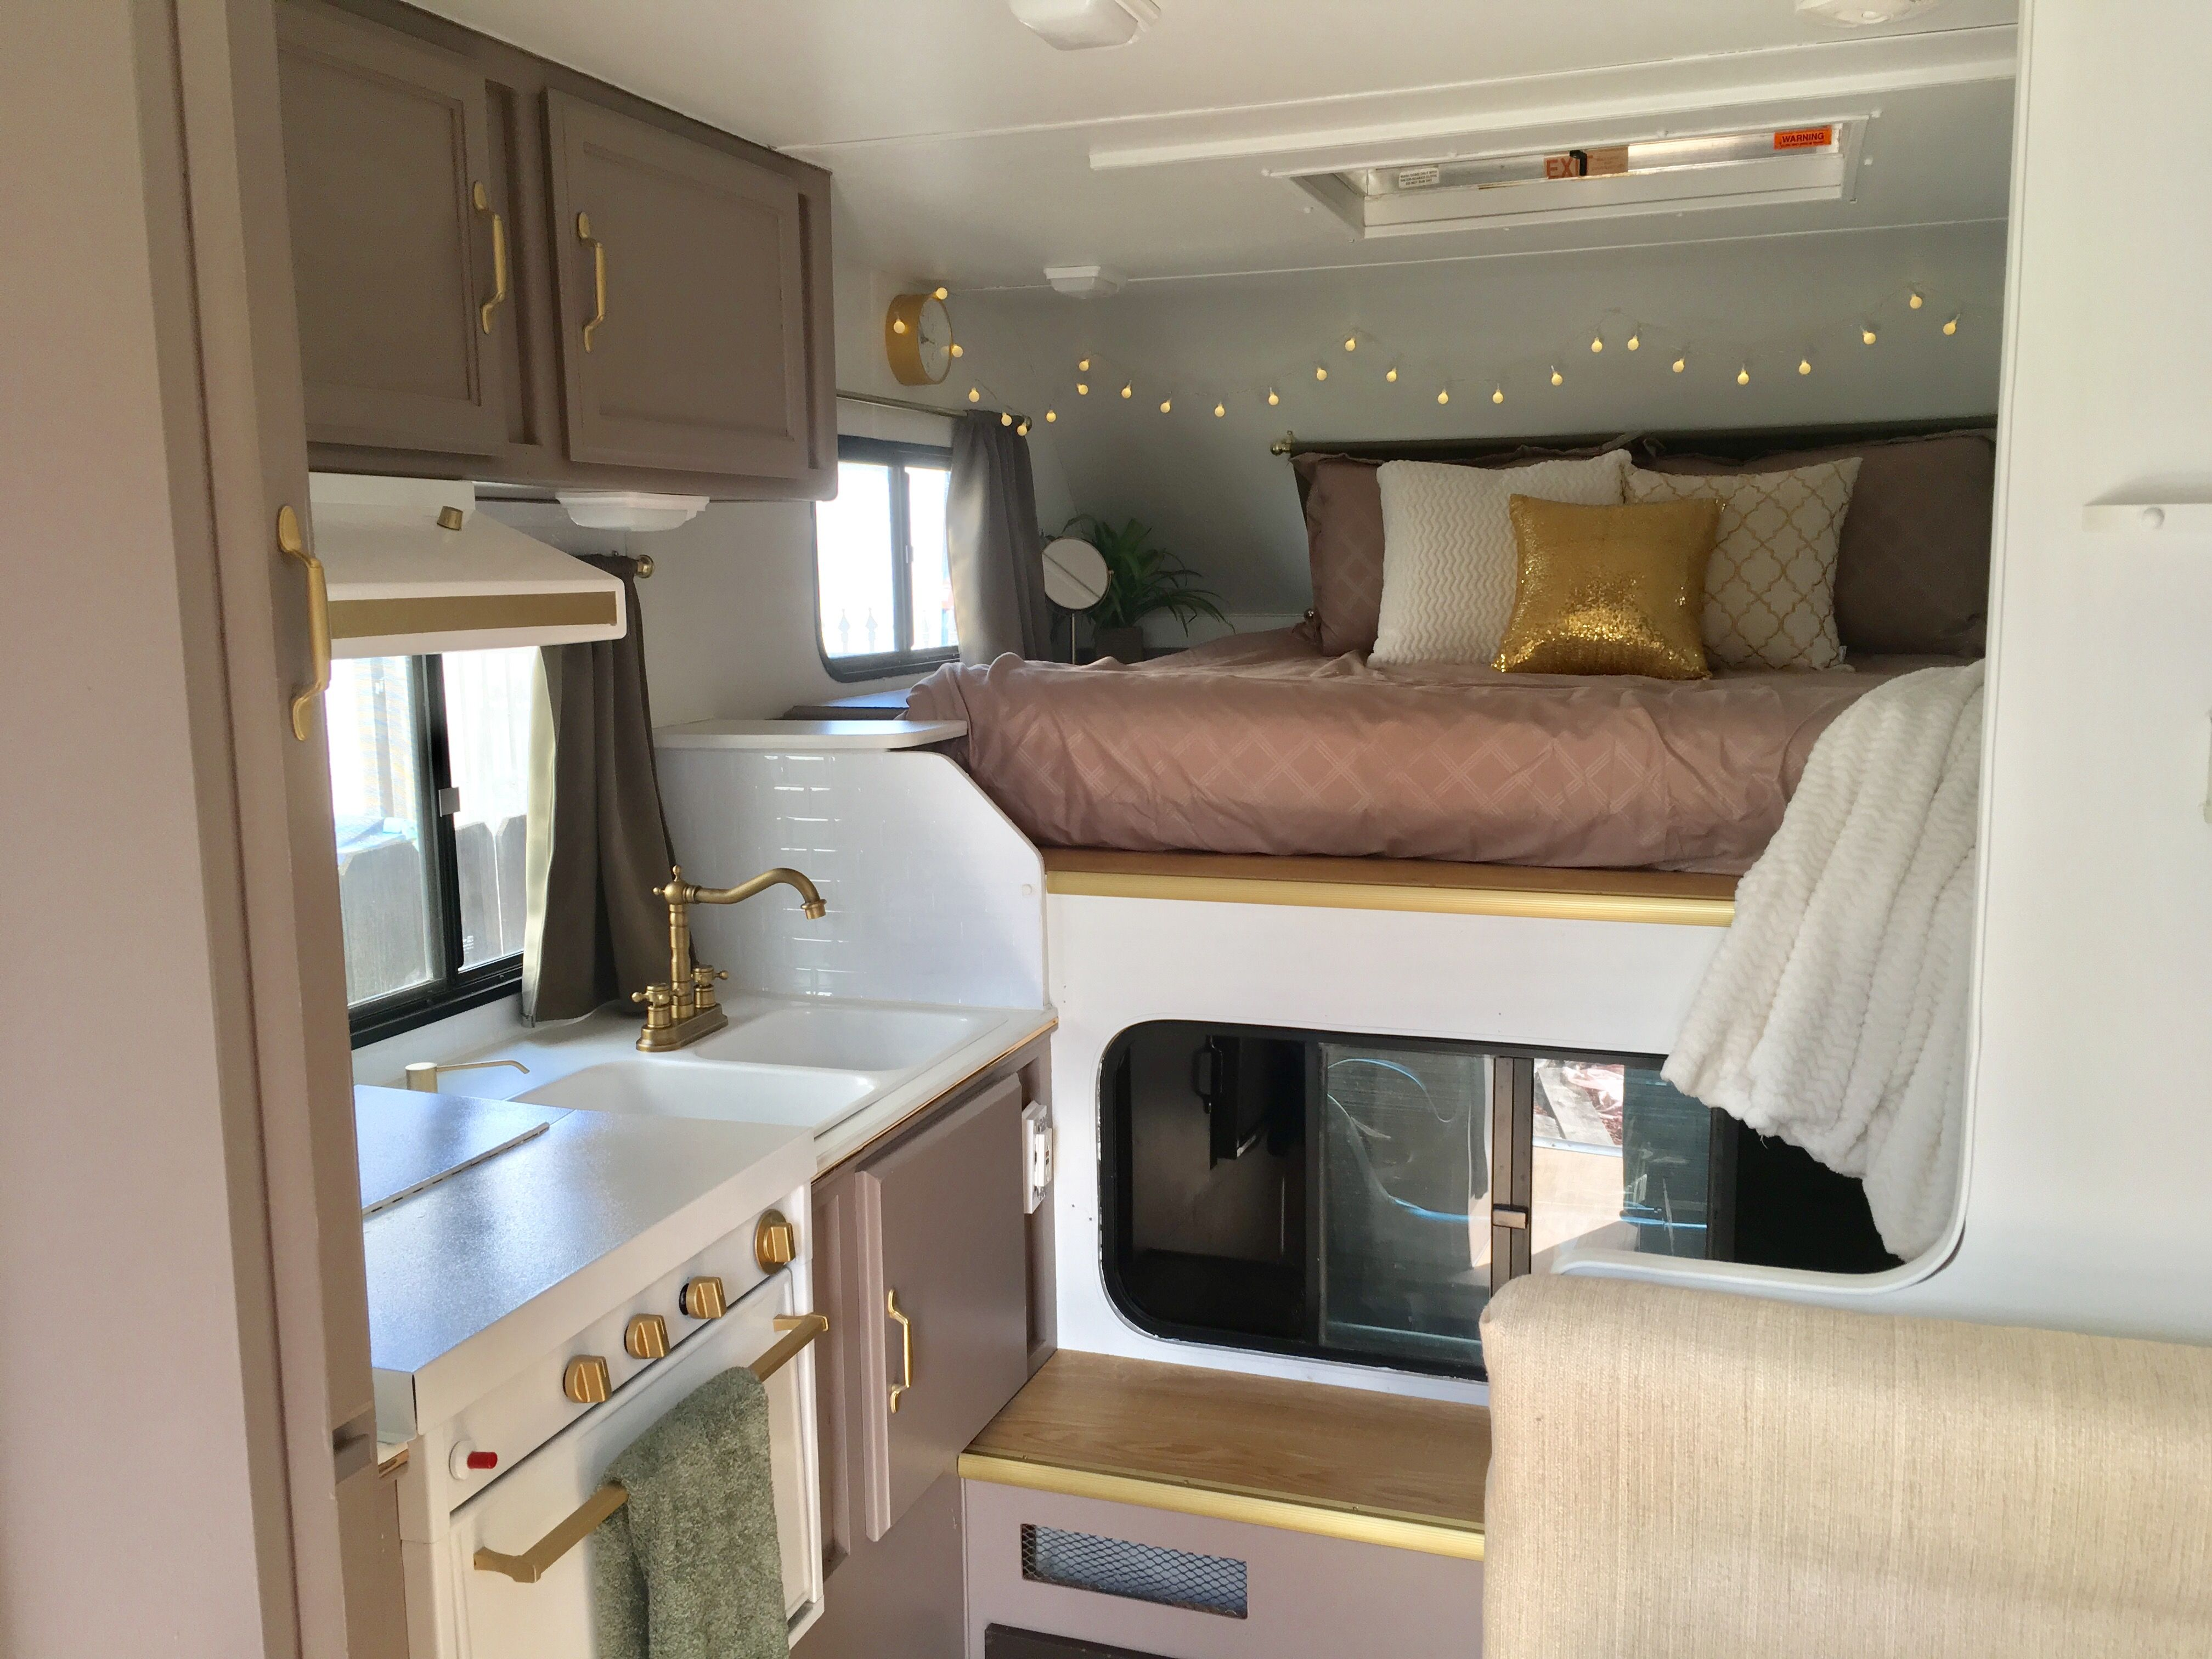 Truck Camper Trailer Remodel Before And After Insta Sara